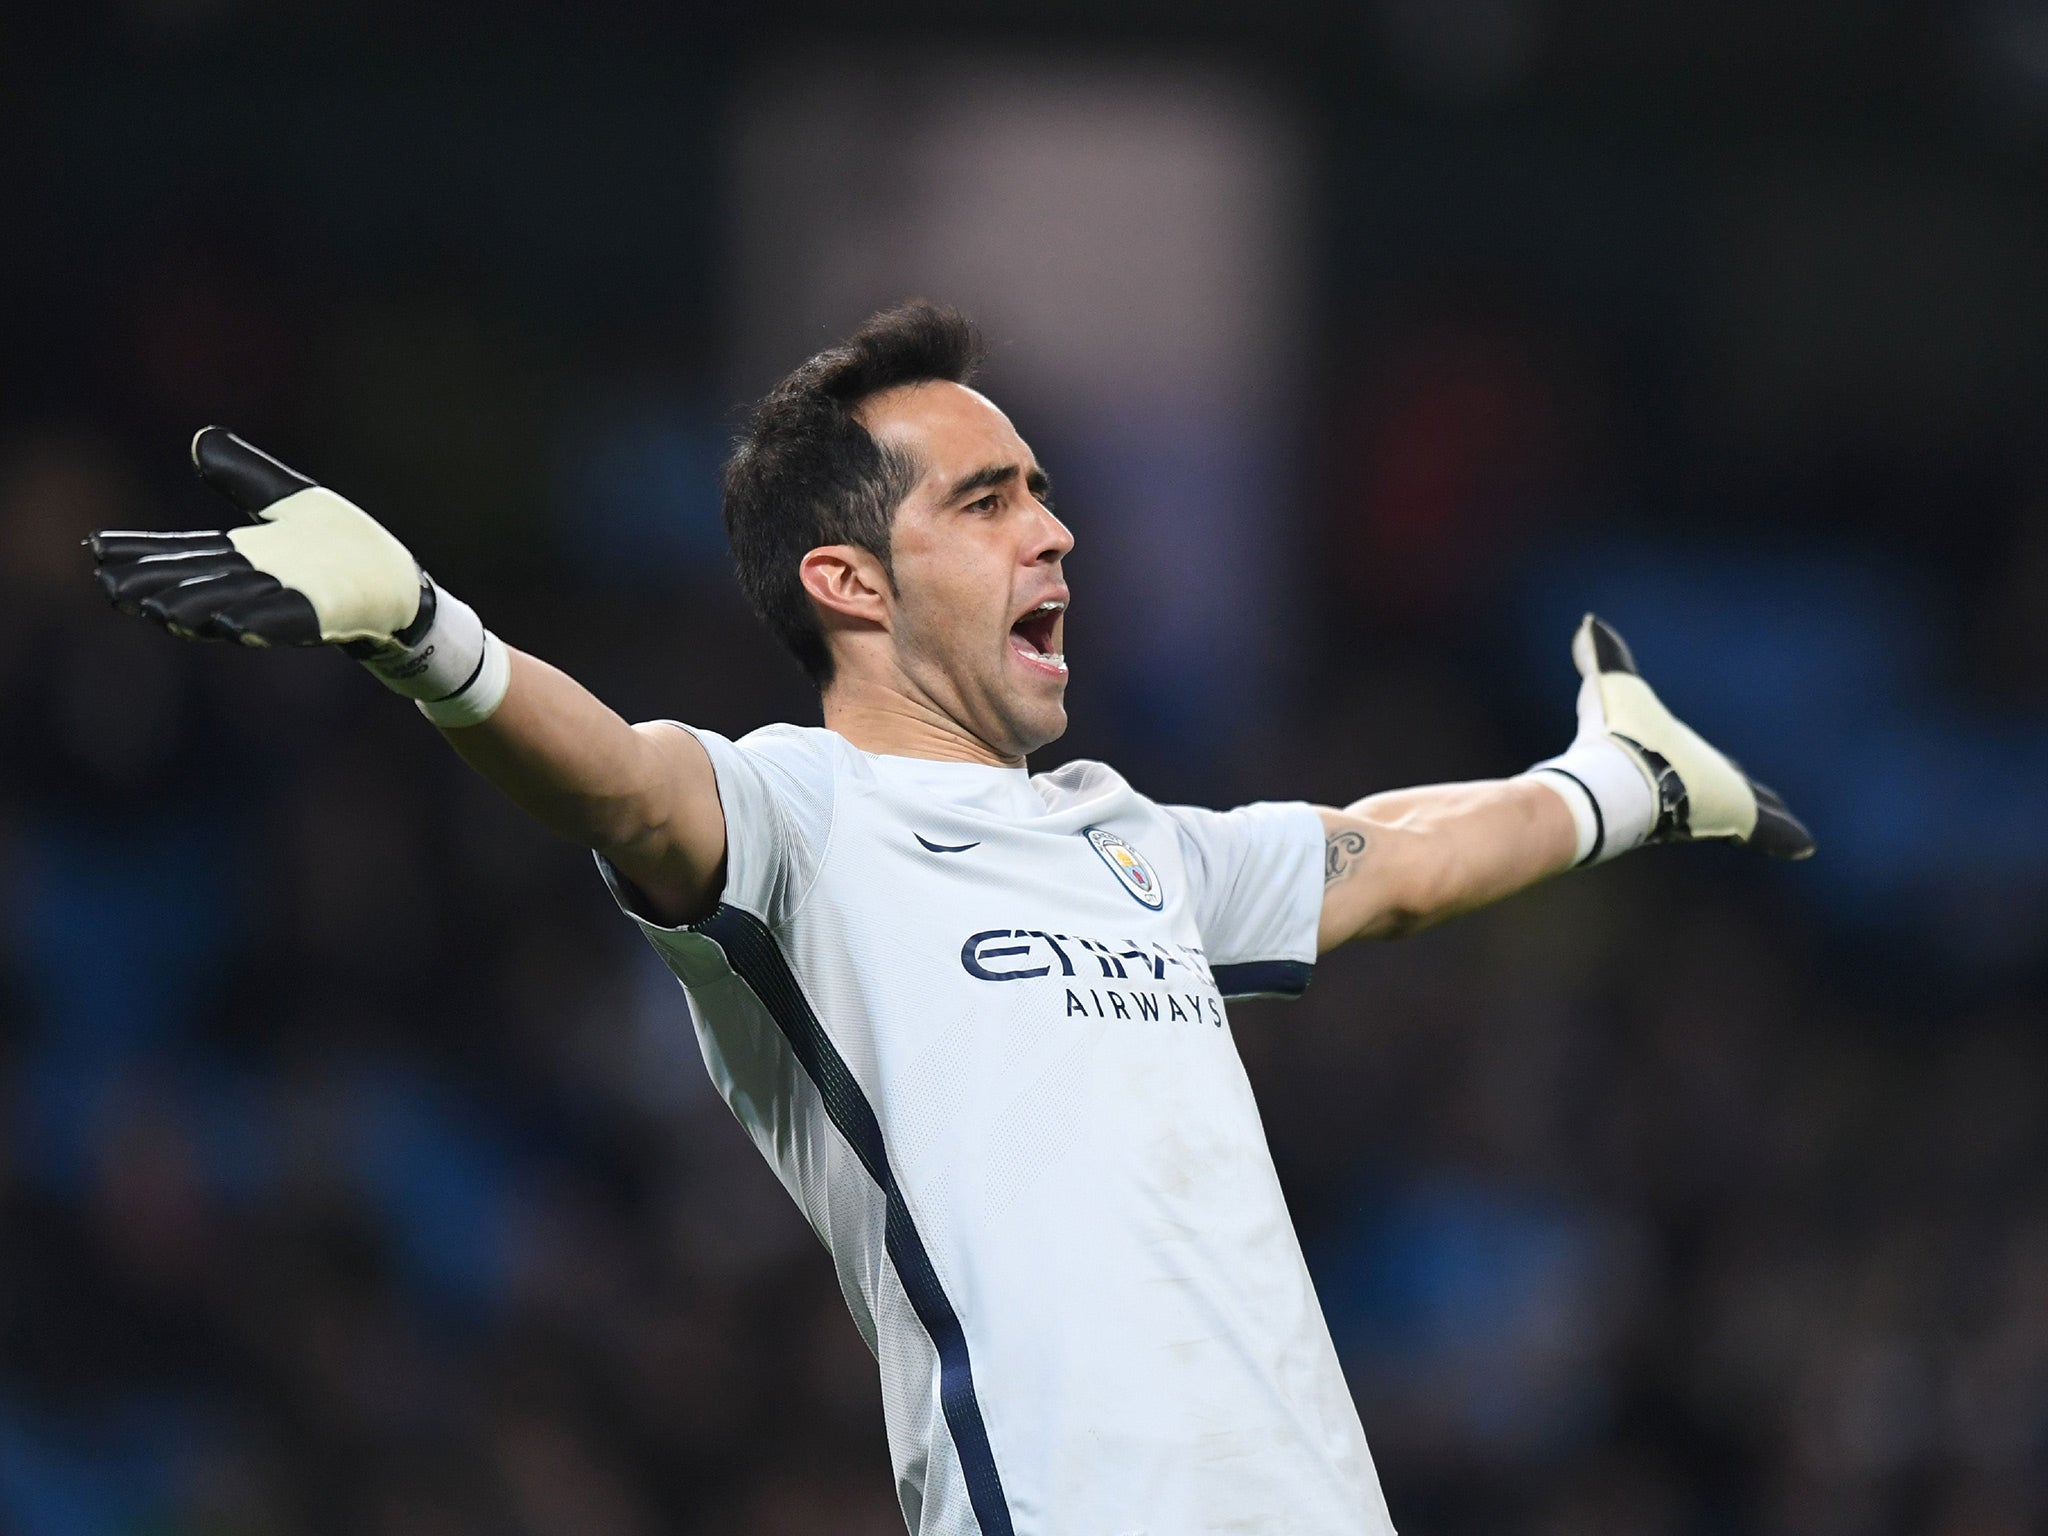 Manchester City: Claudio Bravo is going nowhere despite link to former club Barcelona, says Pep Guardiola